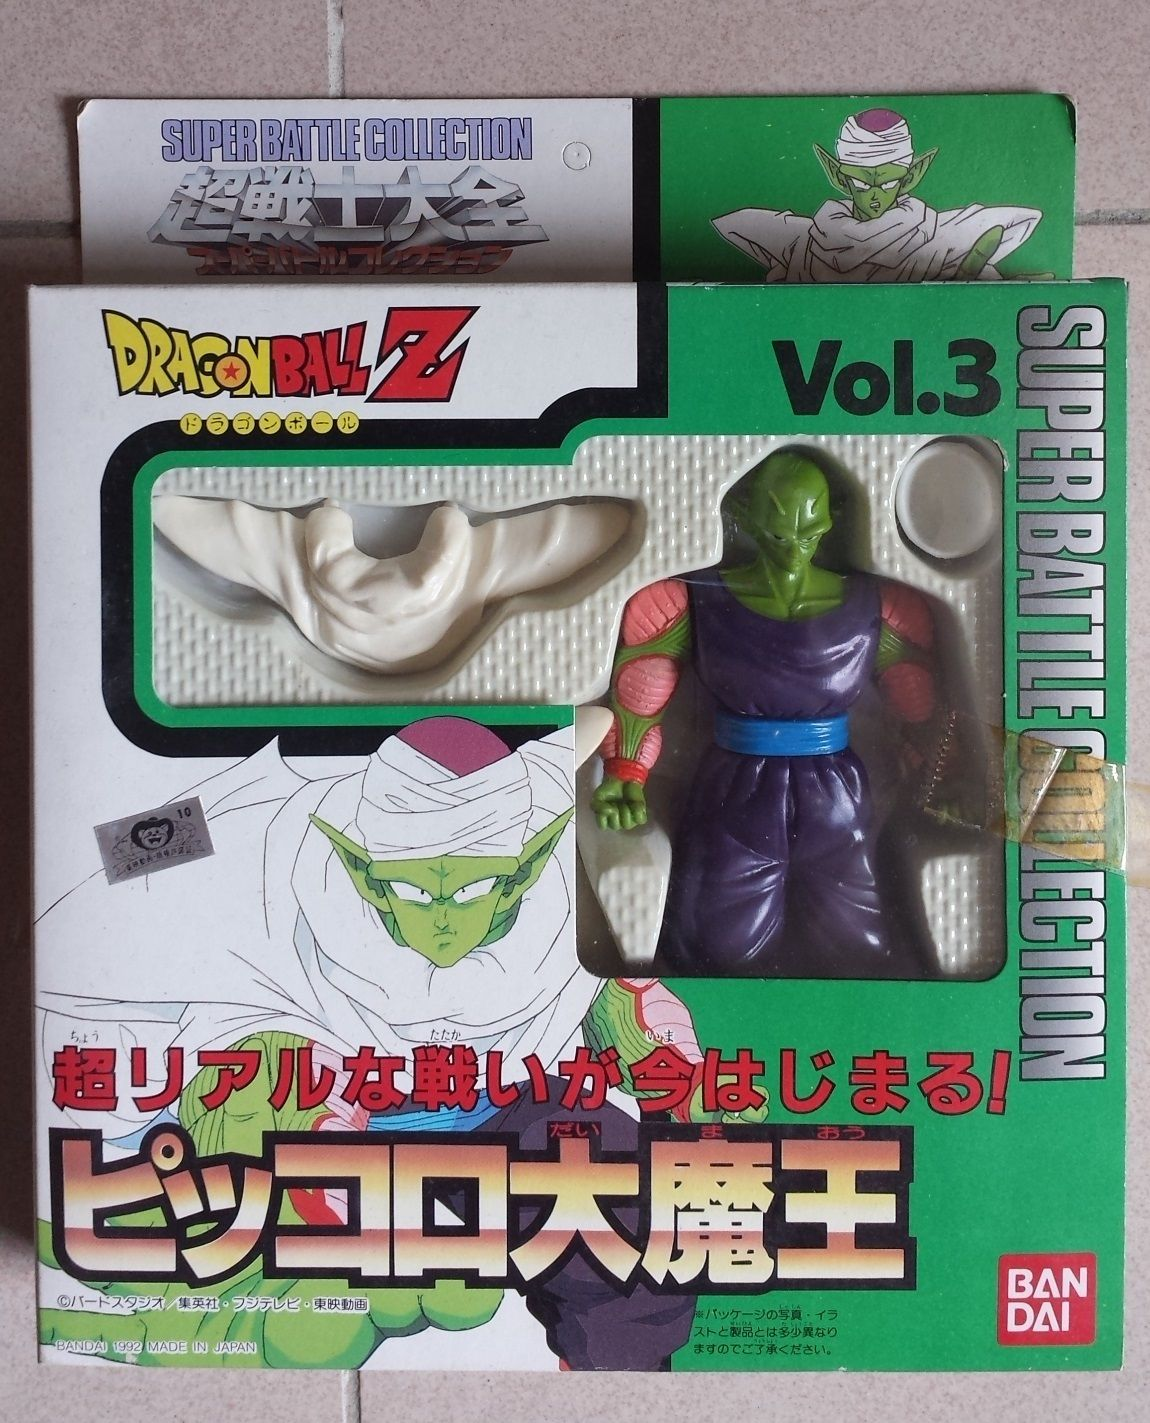 Super Battle Collection – Vol. 3 (1992 Made in Japan Version)